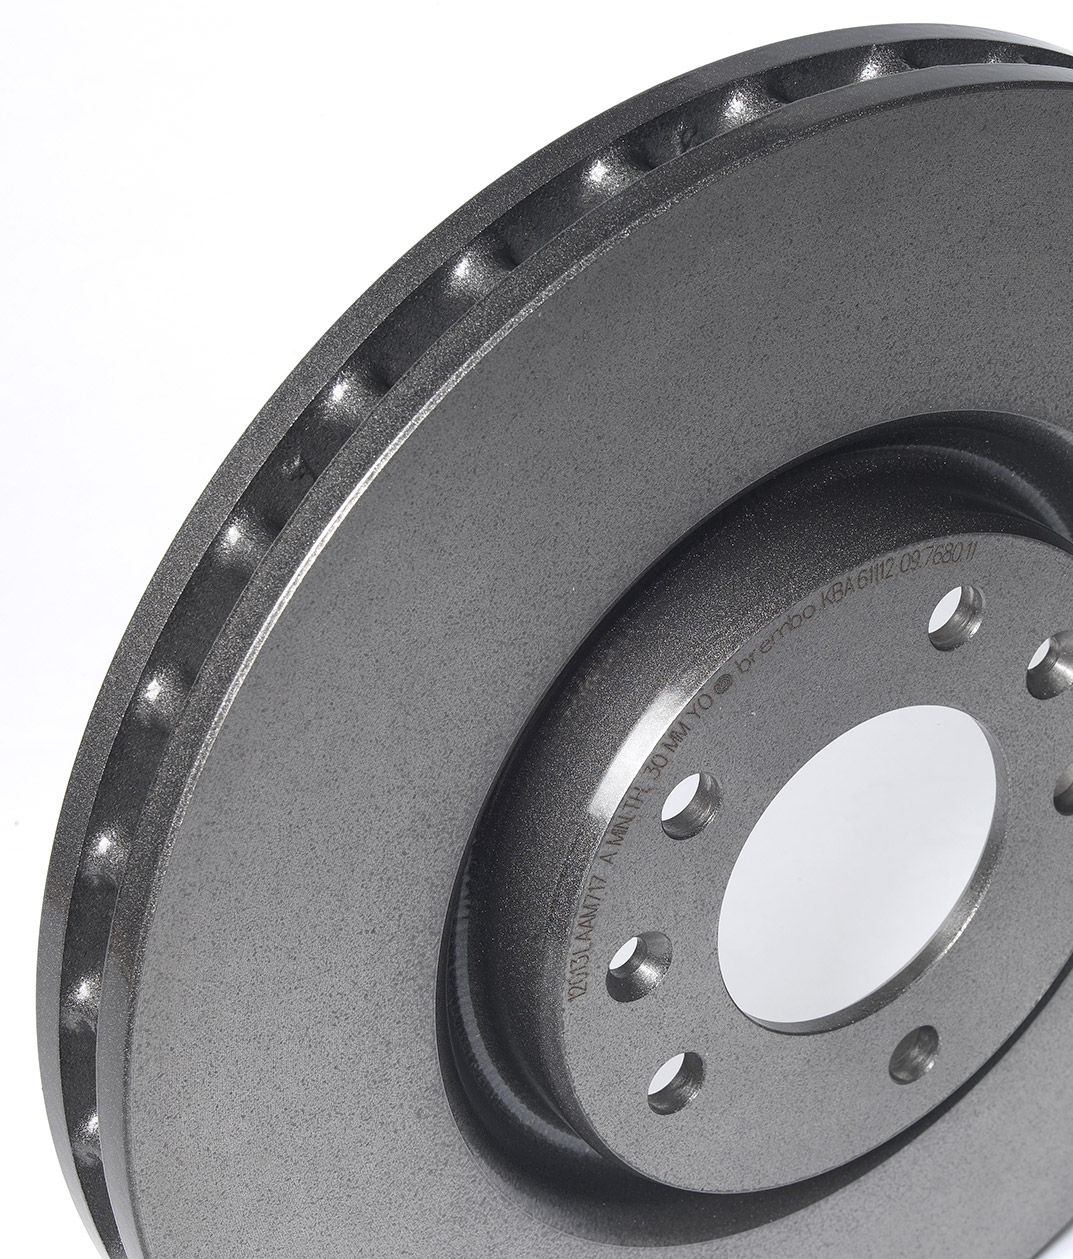 Brembo aftermarket disc in cast iron with pillar venting